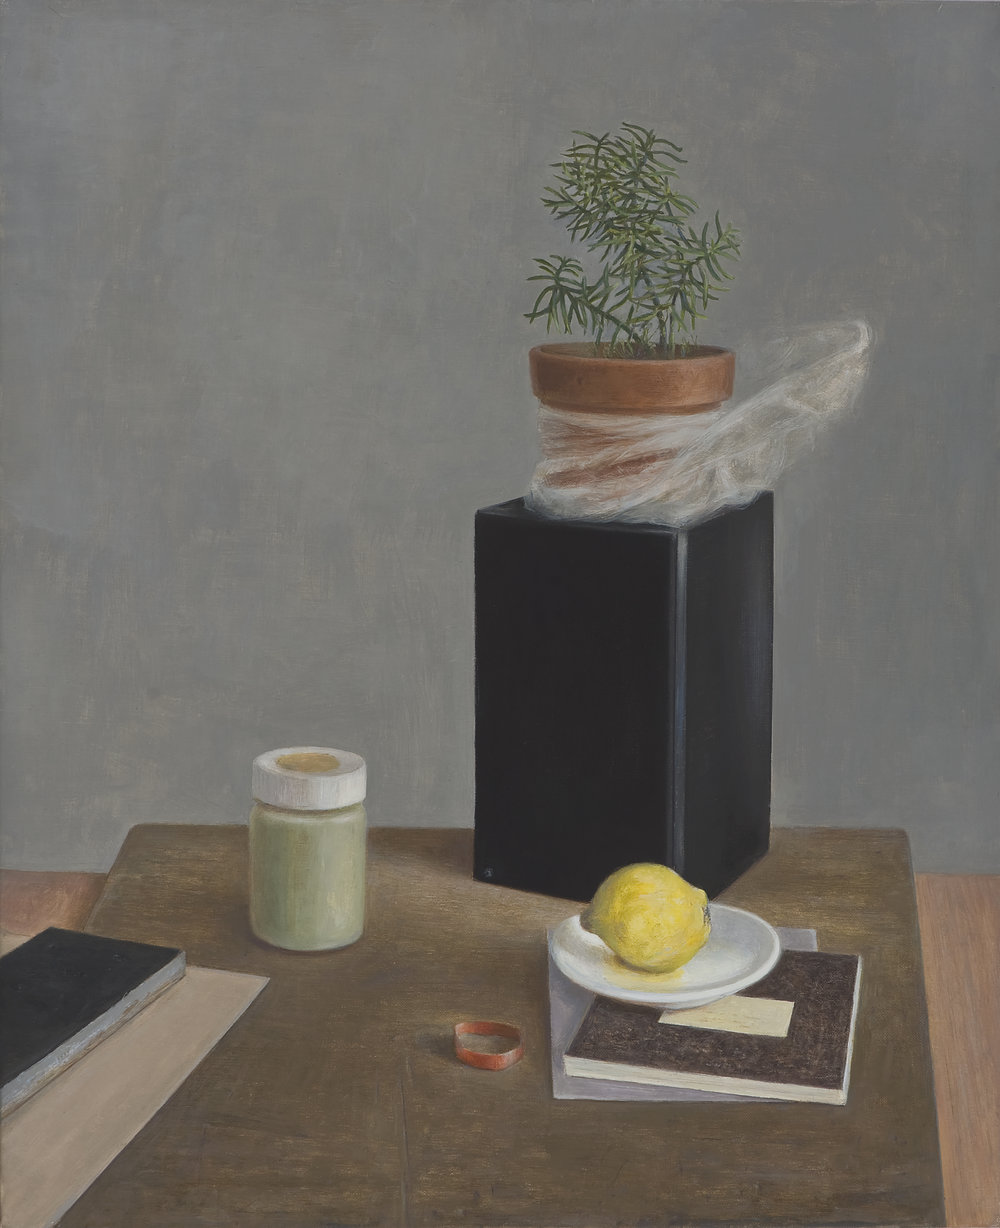 Arrangement with Quince 1  2016 Oil on linen 56x46cm $7,000